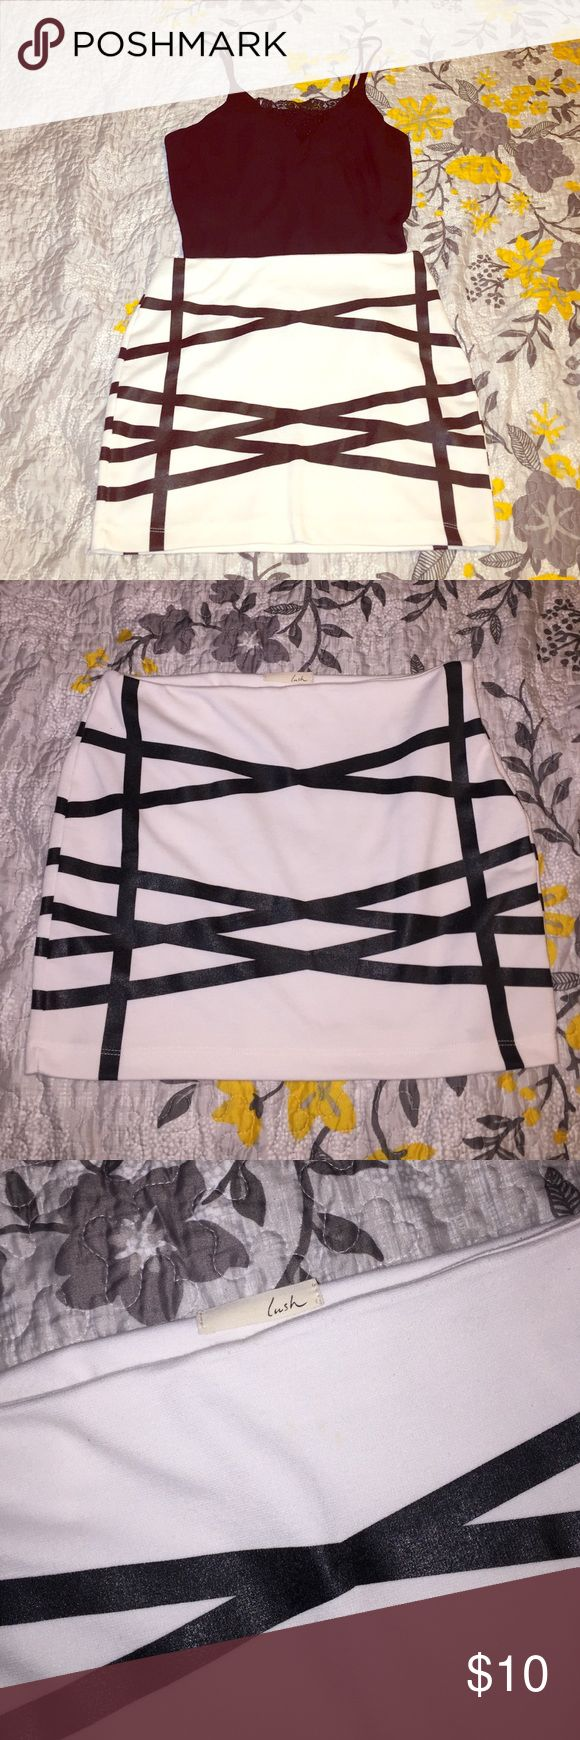 """🔸Lush White Mini Skirt 🔸 White mini skirt from Lush. Has very cute black bandaged design to make super unique ! Skirt is comfy ... Perfect for a night out ! Length 15"""" Lush Skirts Mini"""